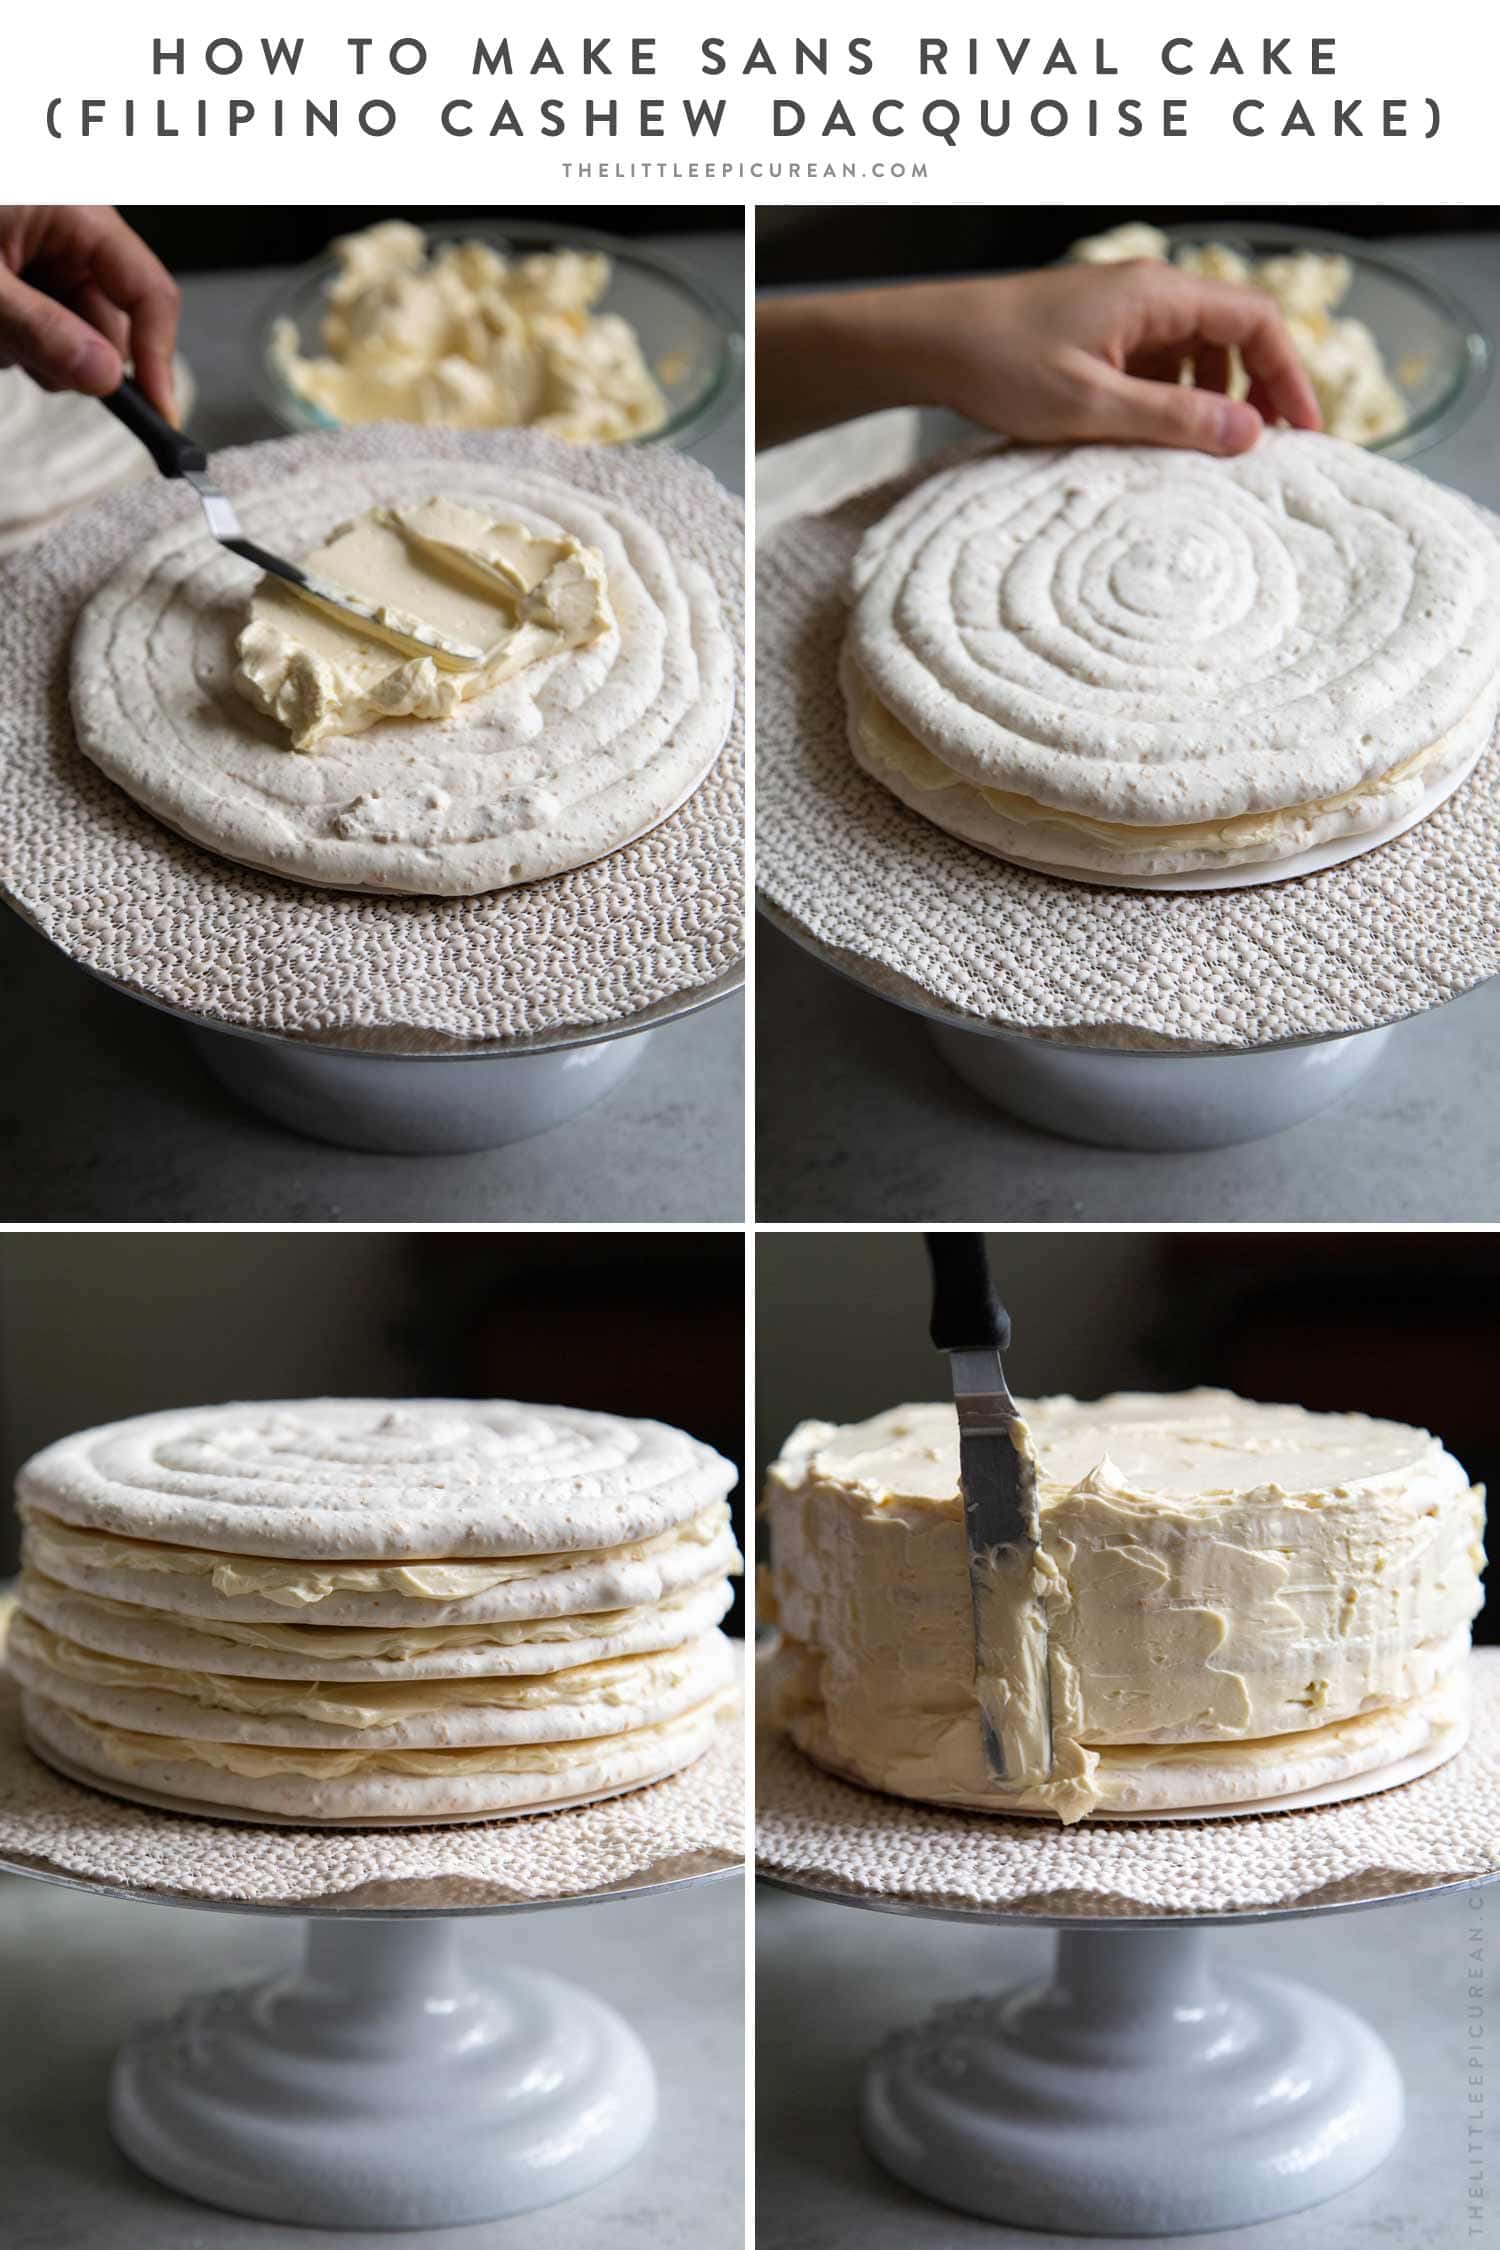 How to assemble Sans Rival Cake (Filipino Cashew Dacquoise Cake). This cake layers together cashew meringue and French buttercream. #sansrival #cake #cashews #filipino #filipinocake #filipinodessert #layercake